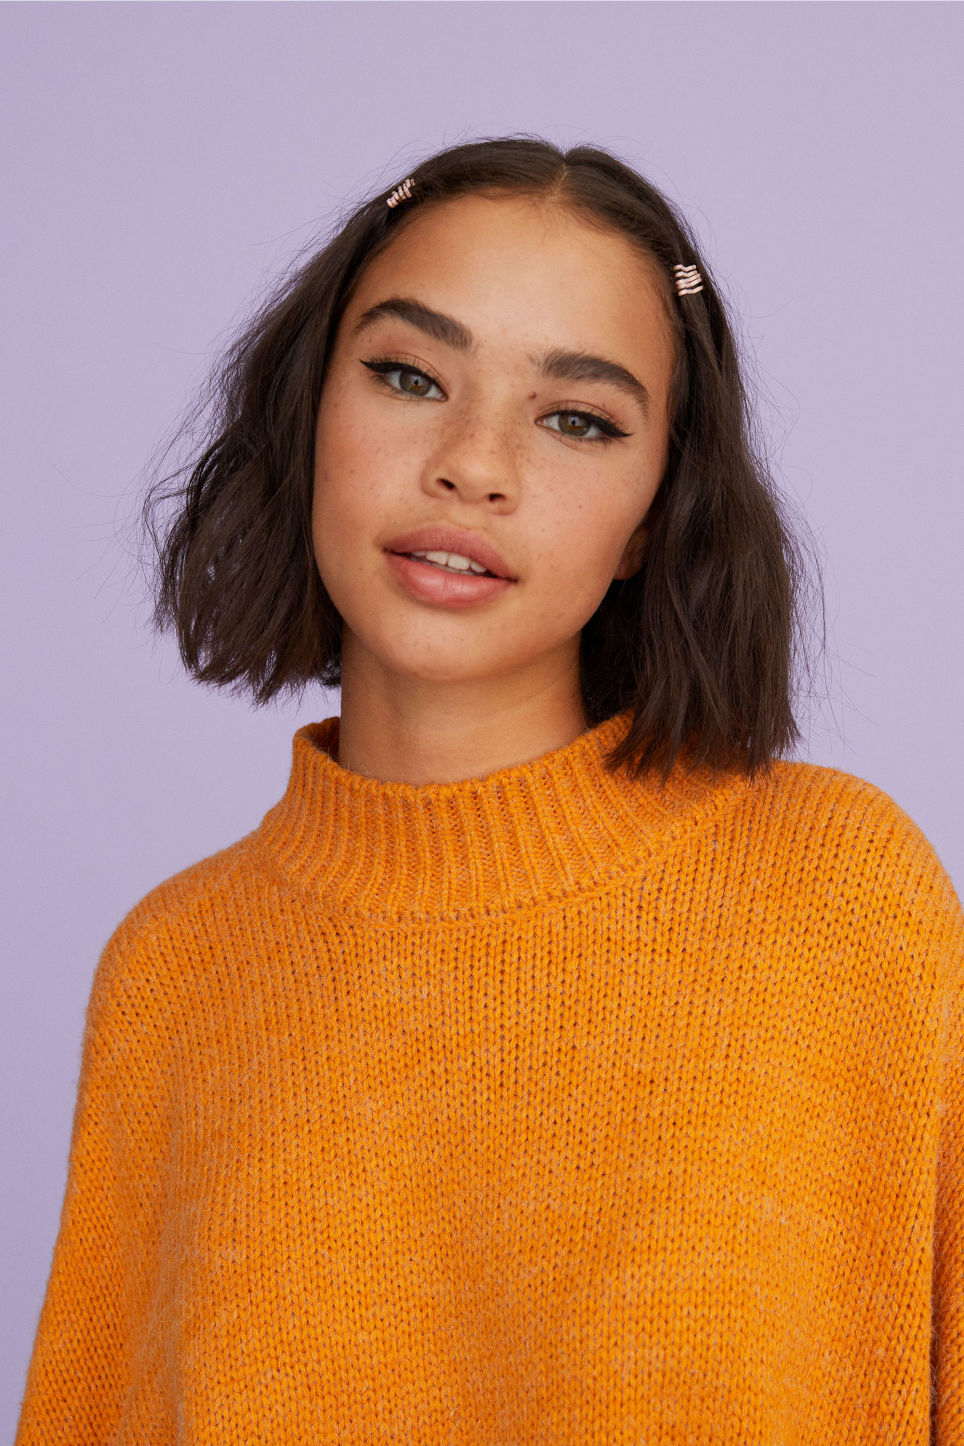 Detailed image of Monki knitted dress in yellow